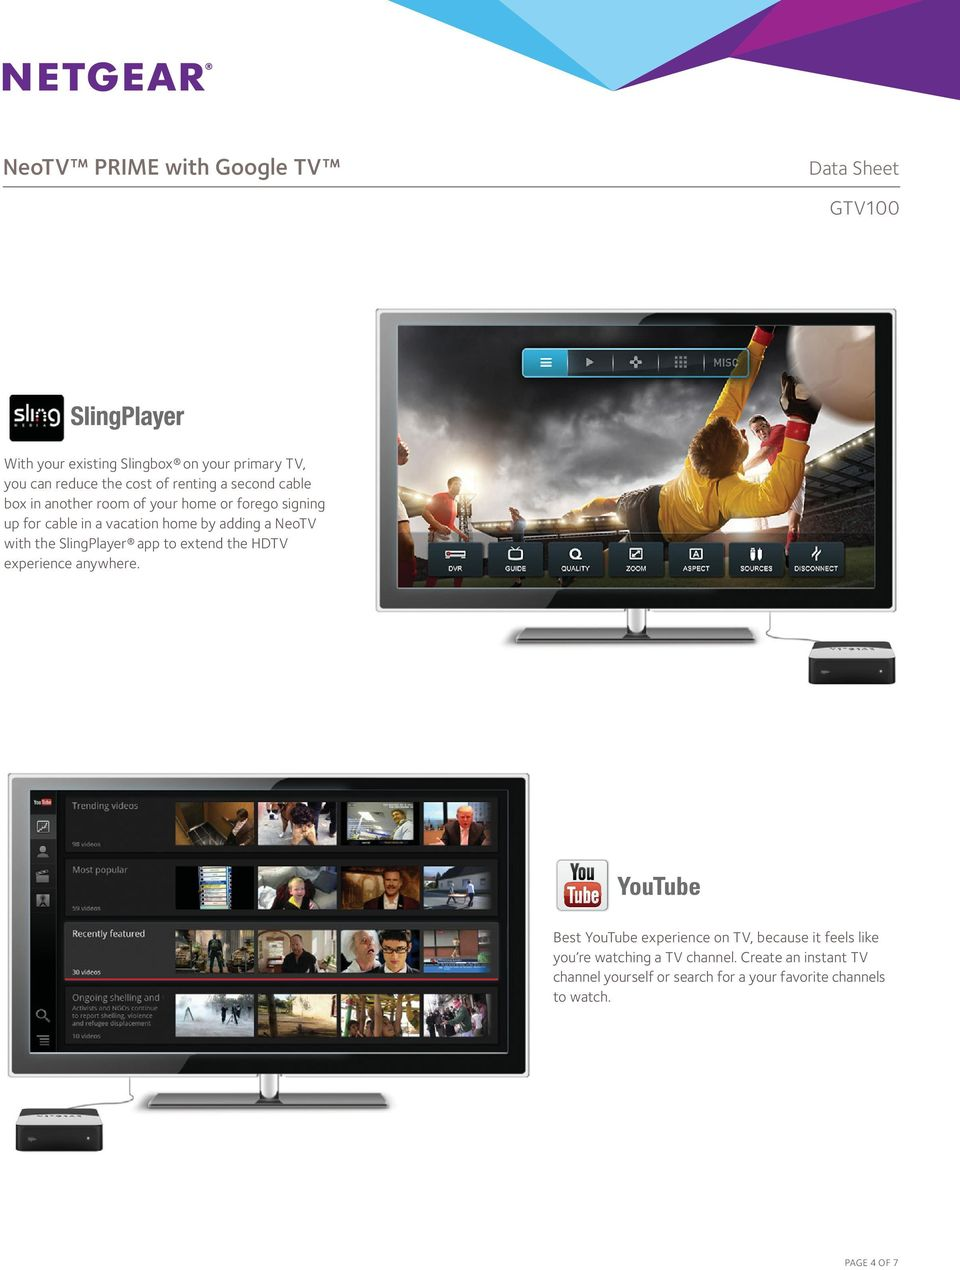 SlingPlayer app to extend the HDTV experience anywhere.